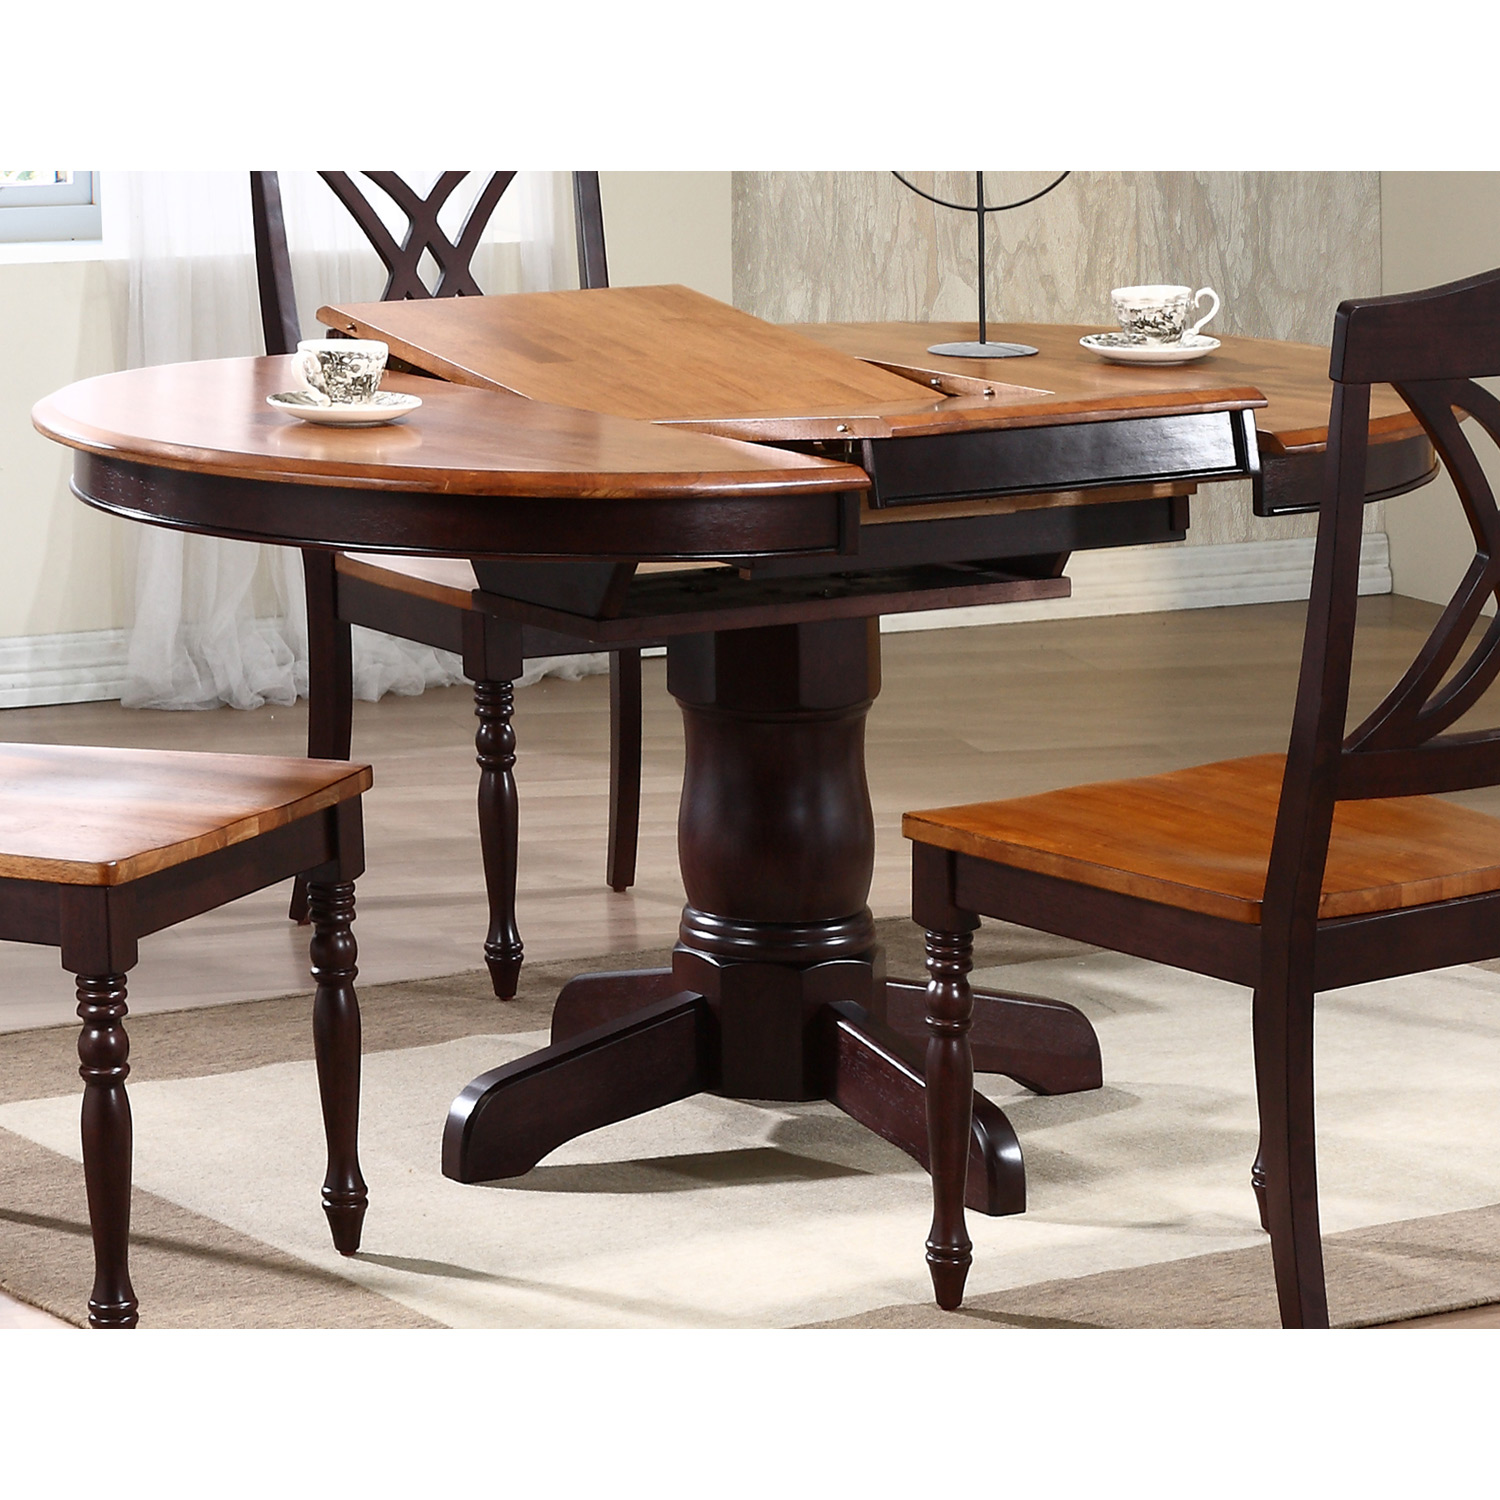 Cyrus extending dining table round top pedestal base two tone icon